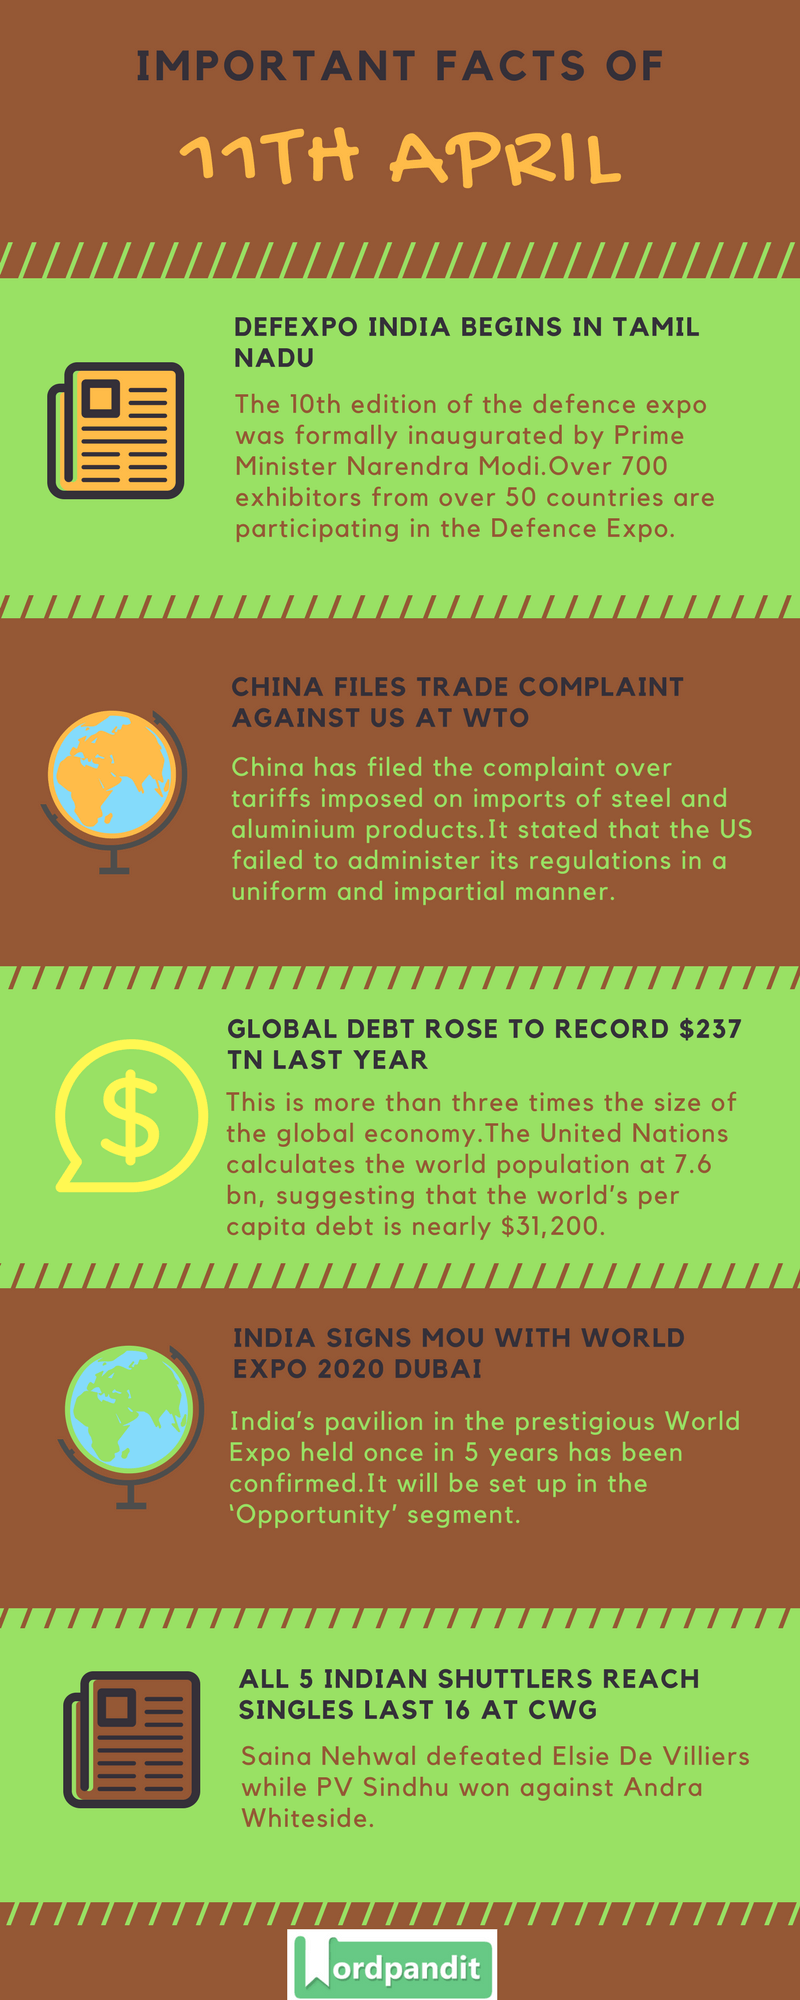 Daily Current Affairs 11 April 2018 Current Affairs Quiz April 11 2018 Current Affairs Infographic